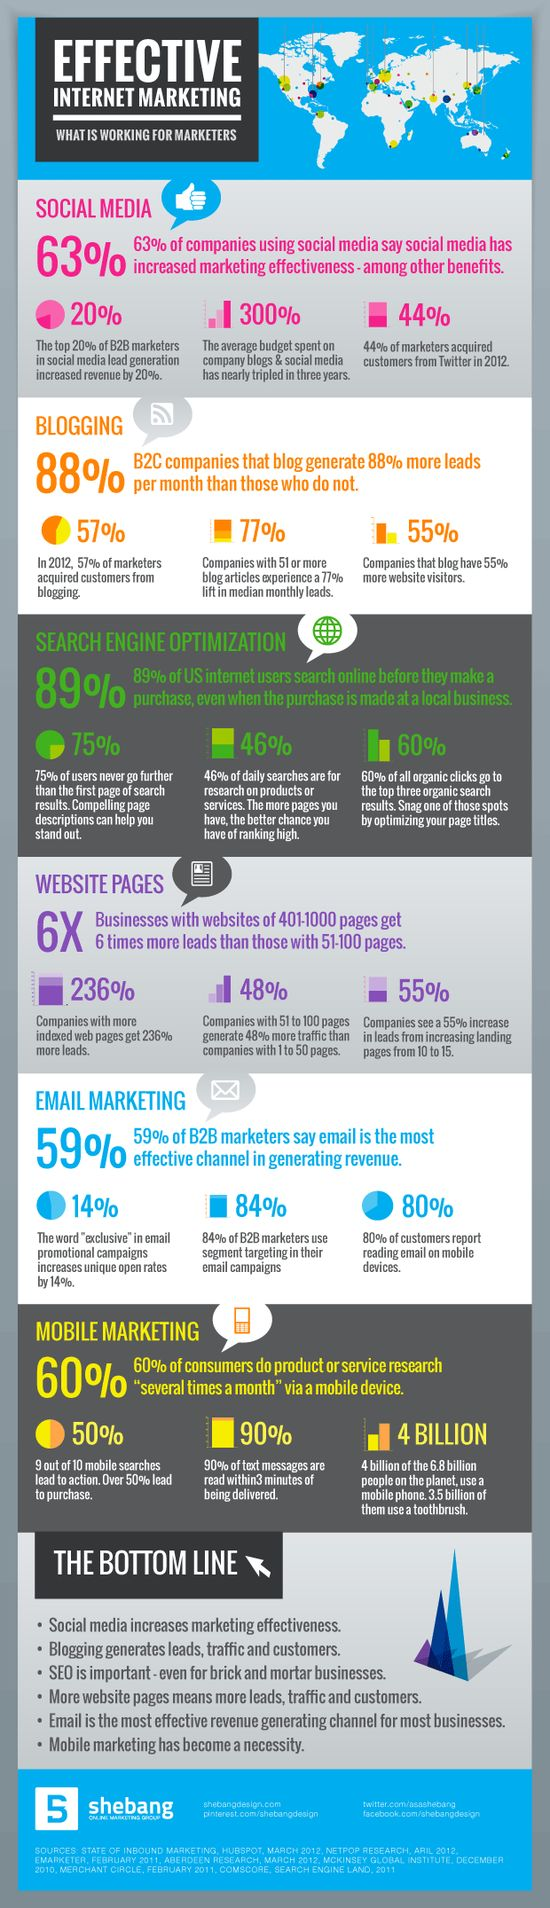 Effective Internet #Marketing: Whats Working #infographic